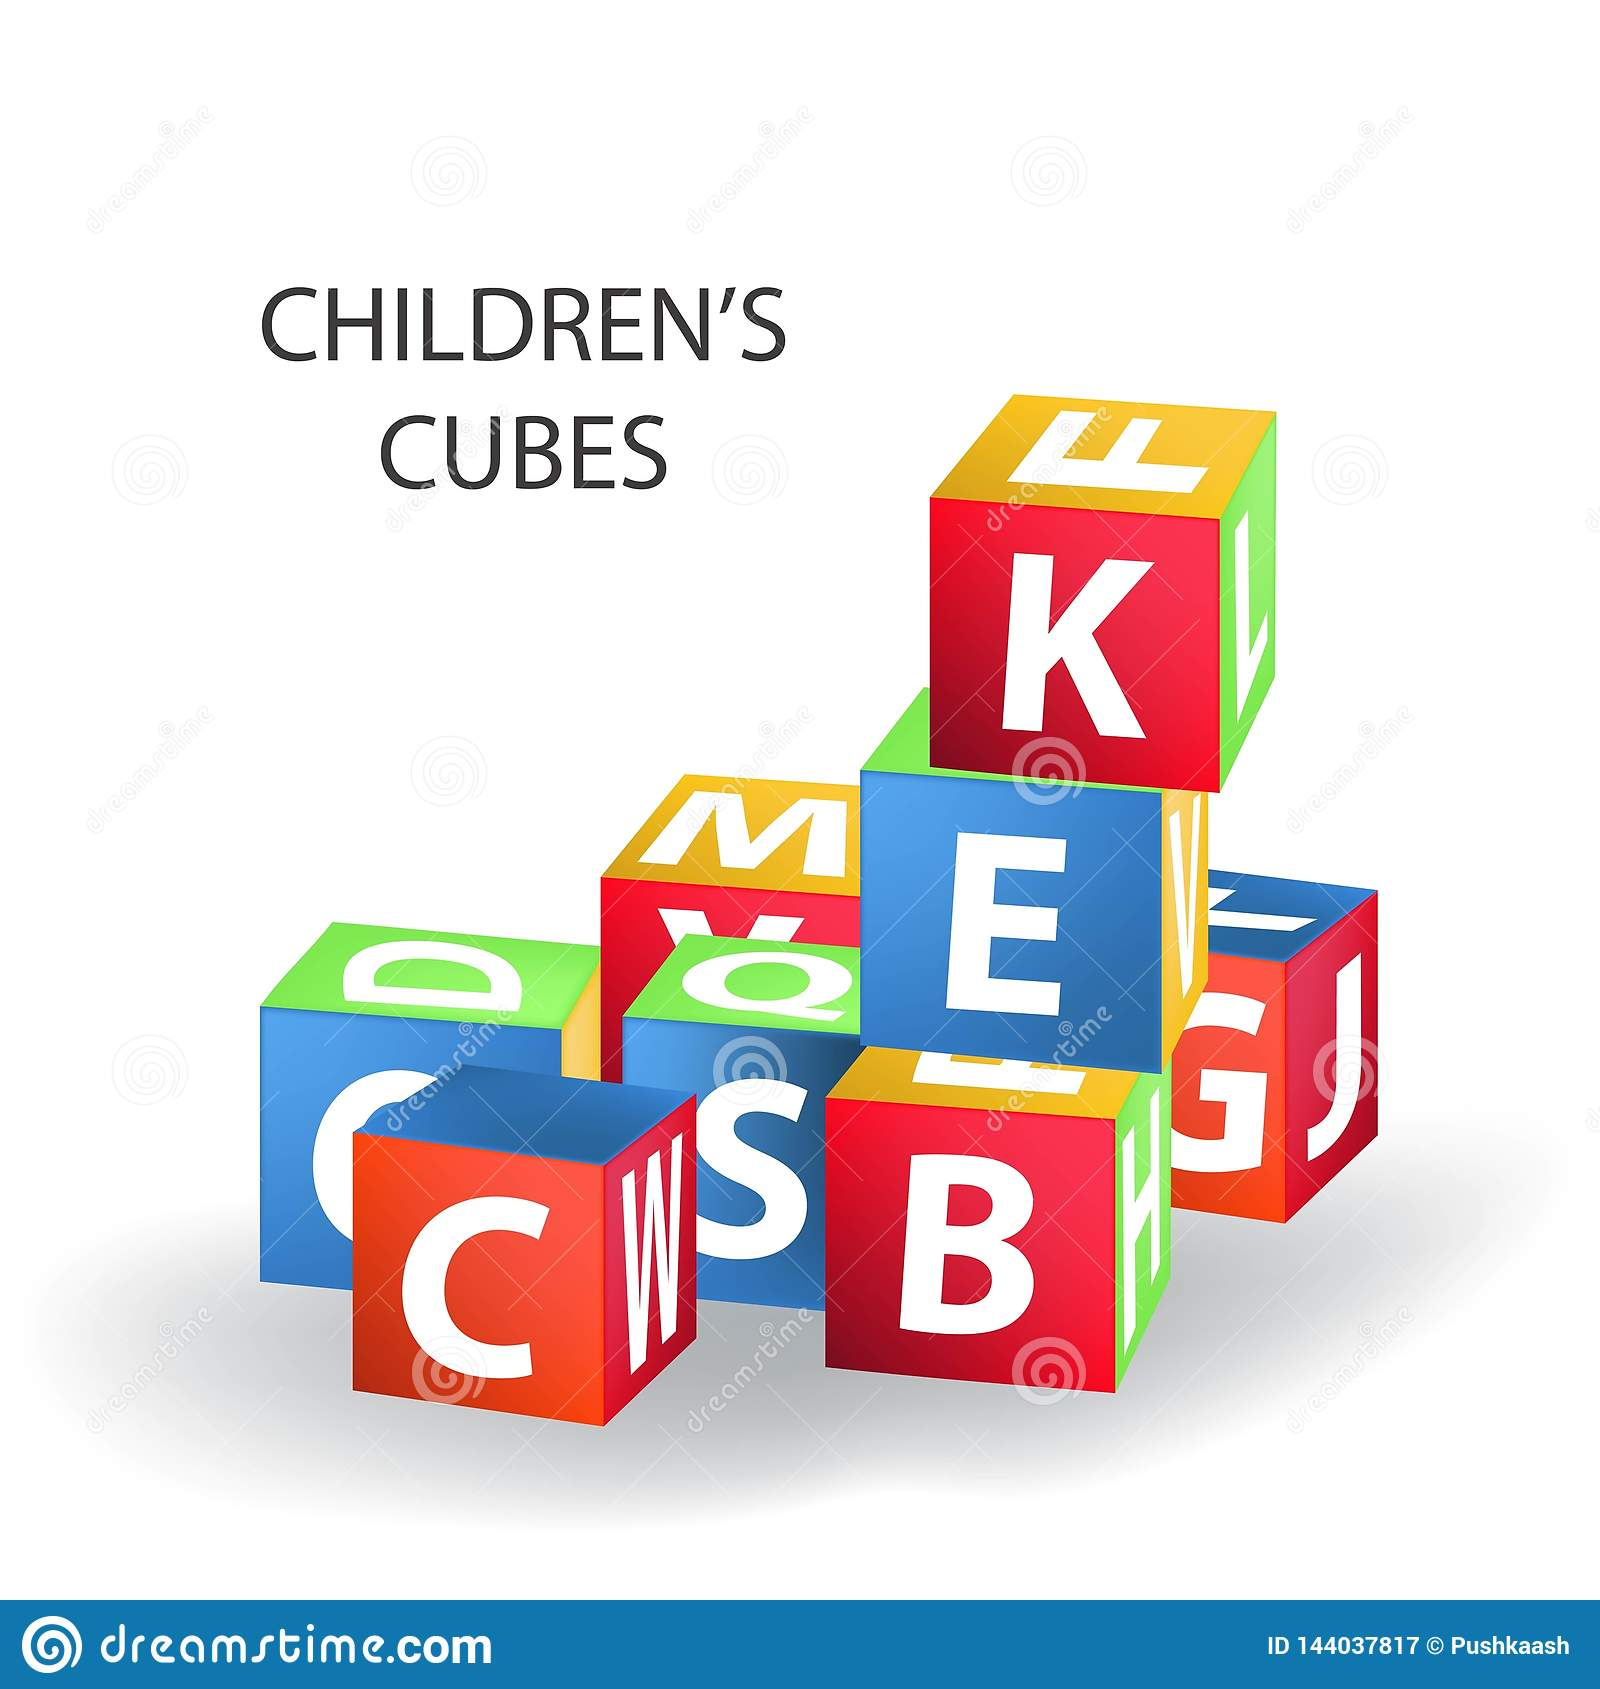 Bright colored bricks building tower. Block vector illustration on white background. Cubes with letters